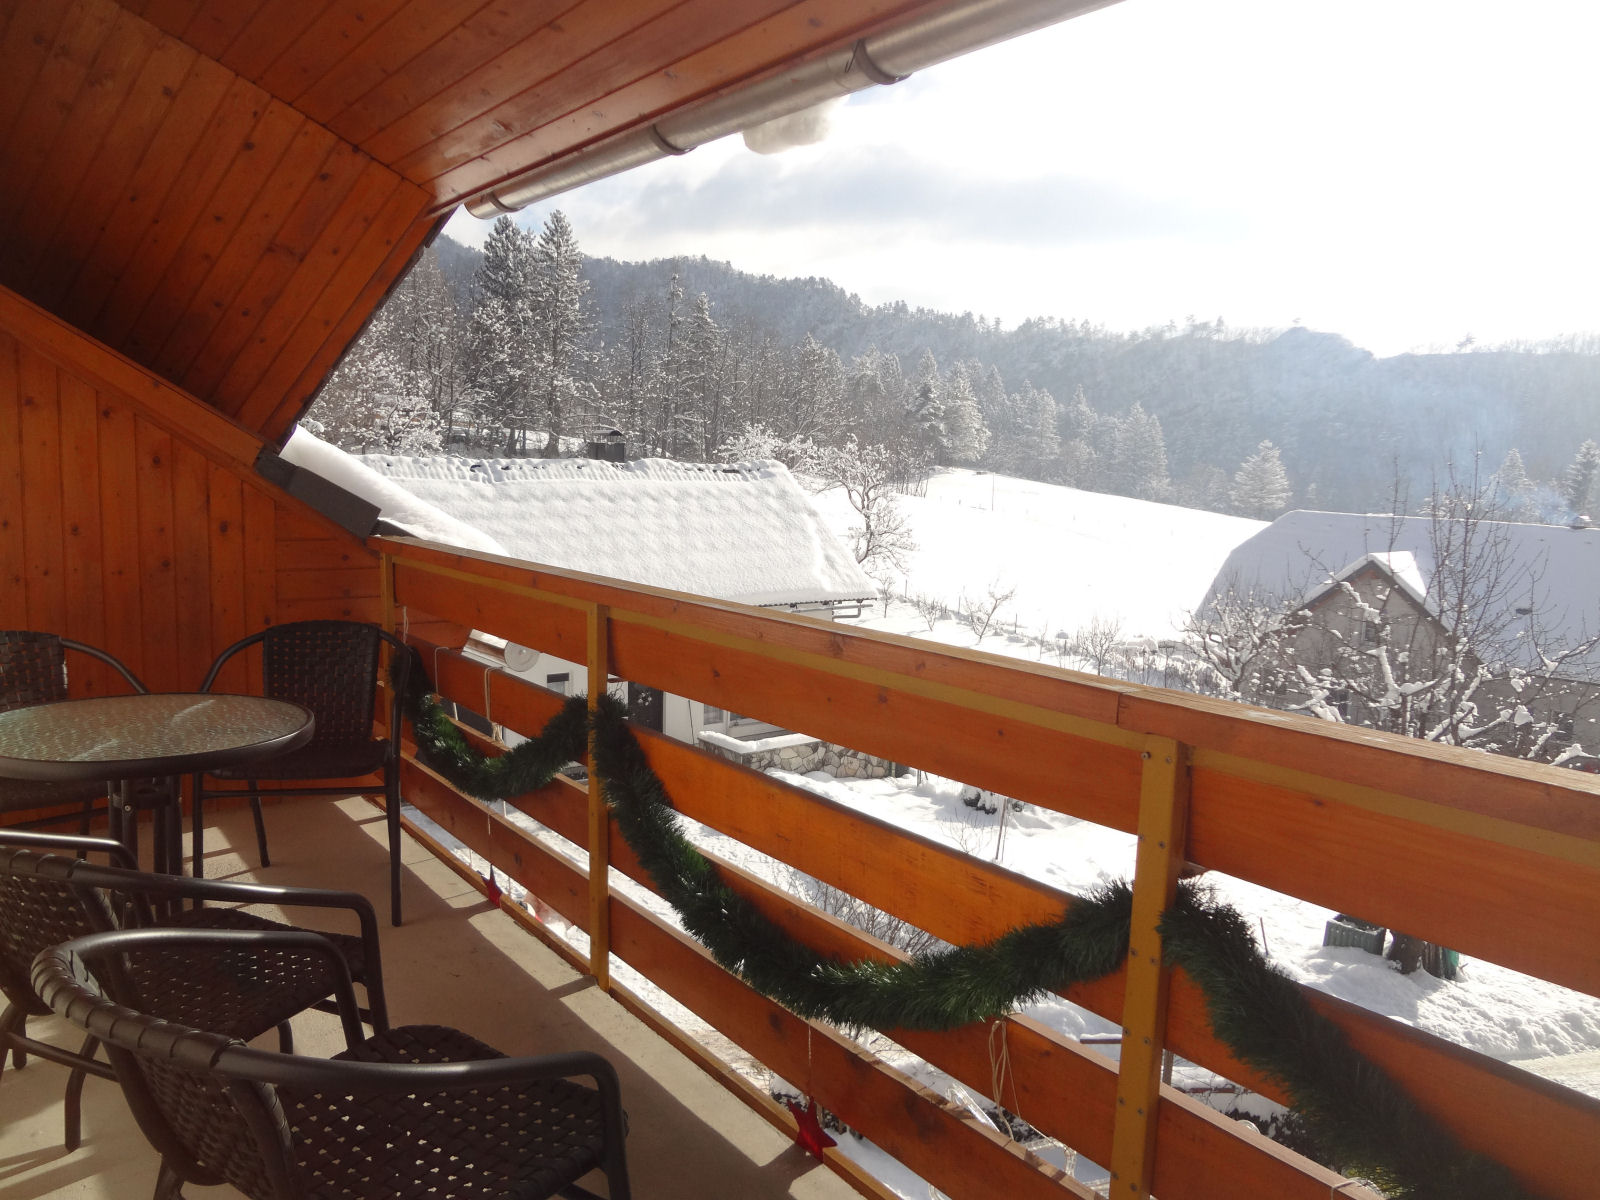 Fine Stay apartment balcony in winter